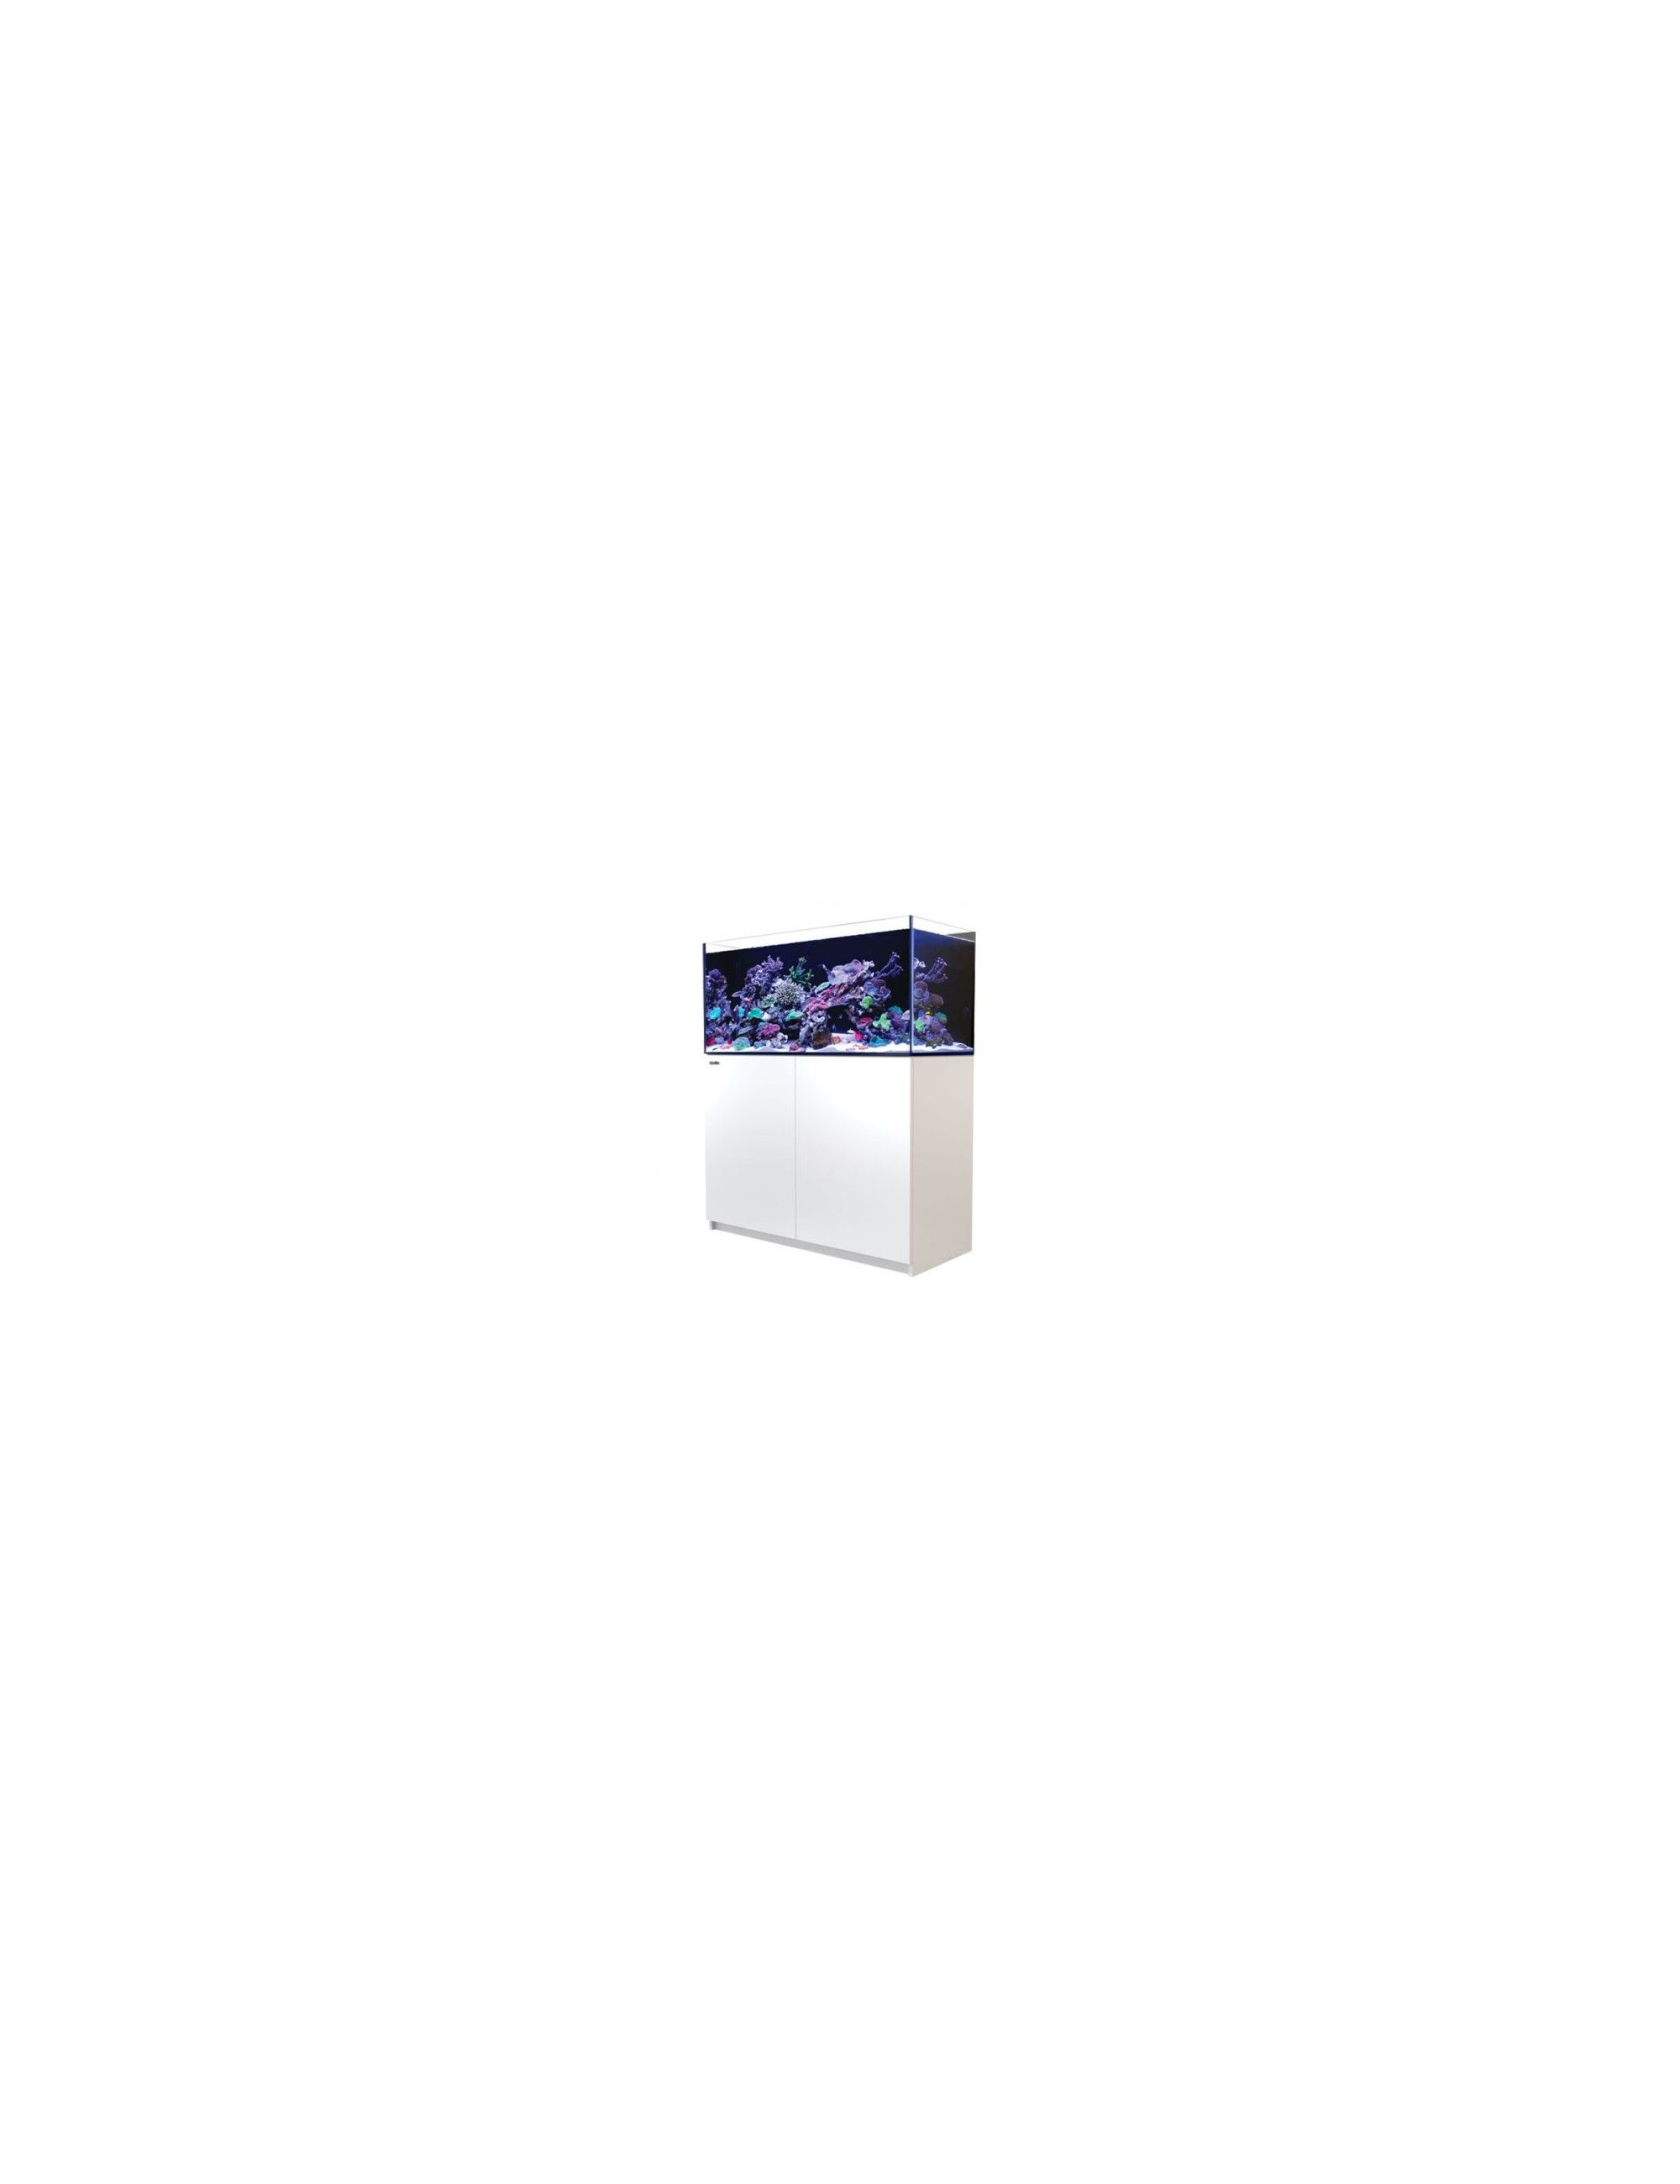 RED SEA - Reefer 350 - Meuble Blanc - 350 litres